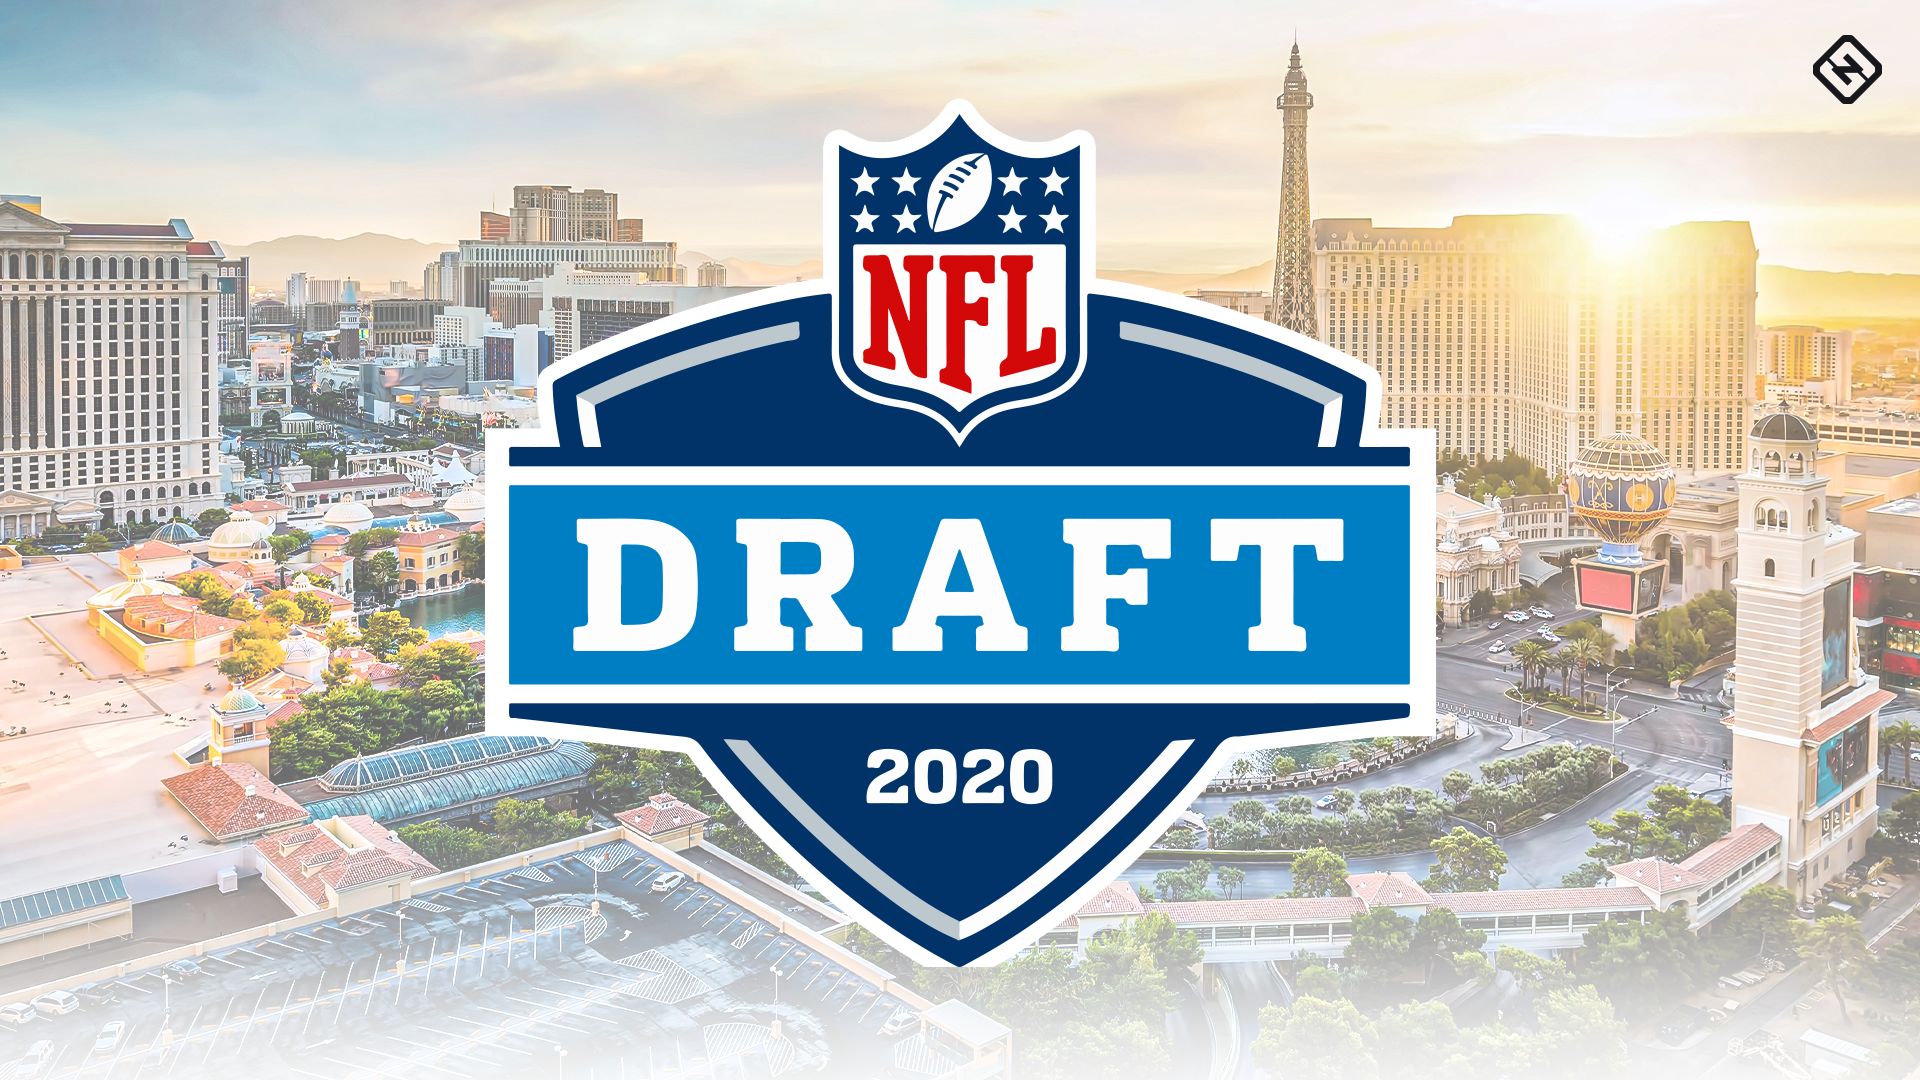 NFL Scouting Combine 2020 NFL Draft